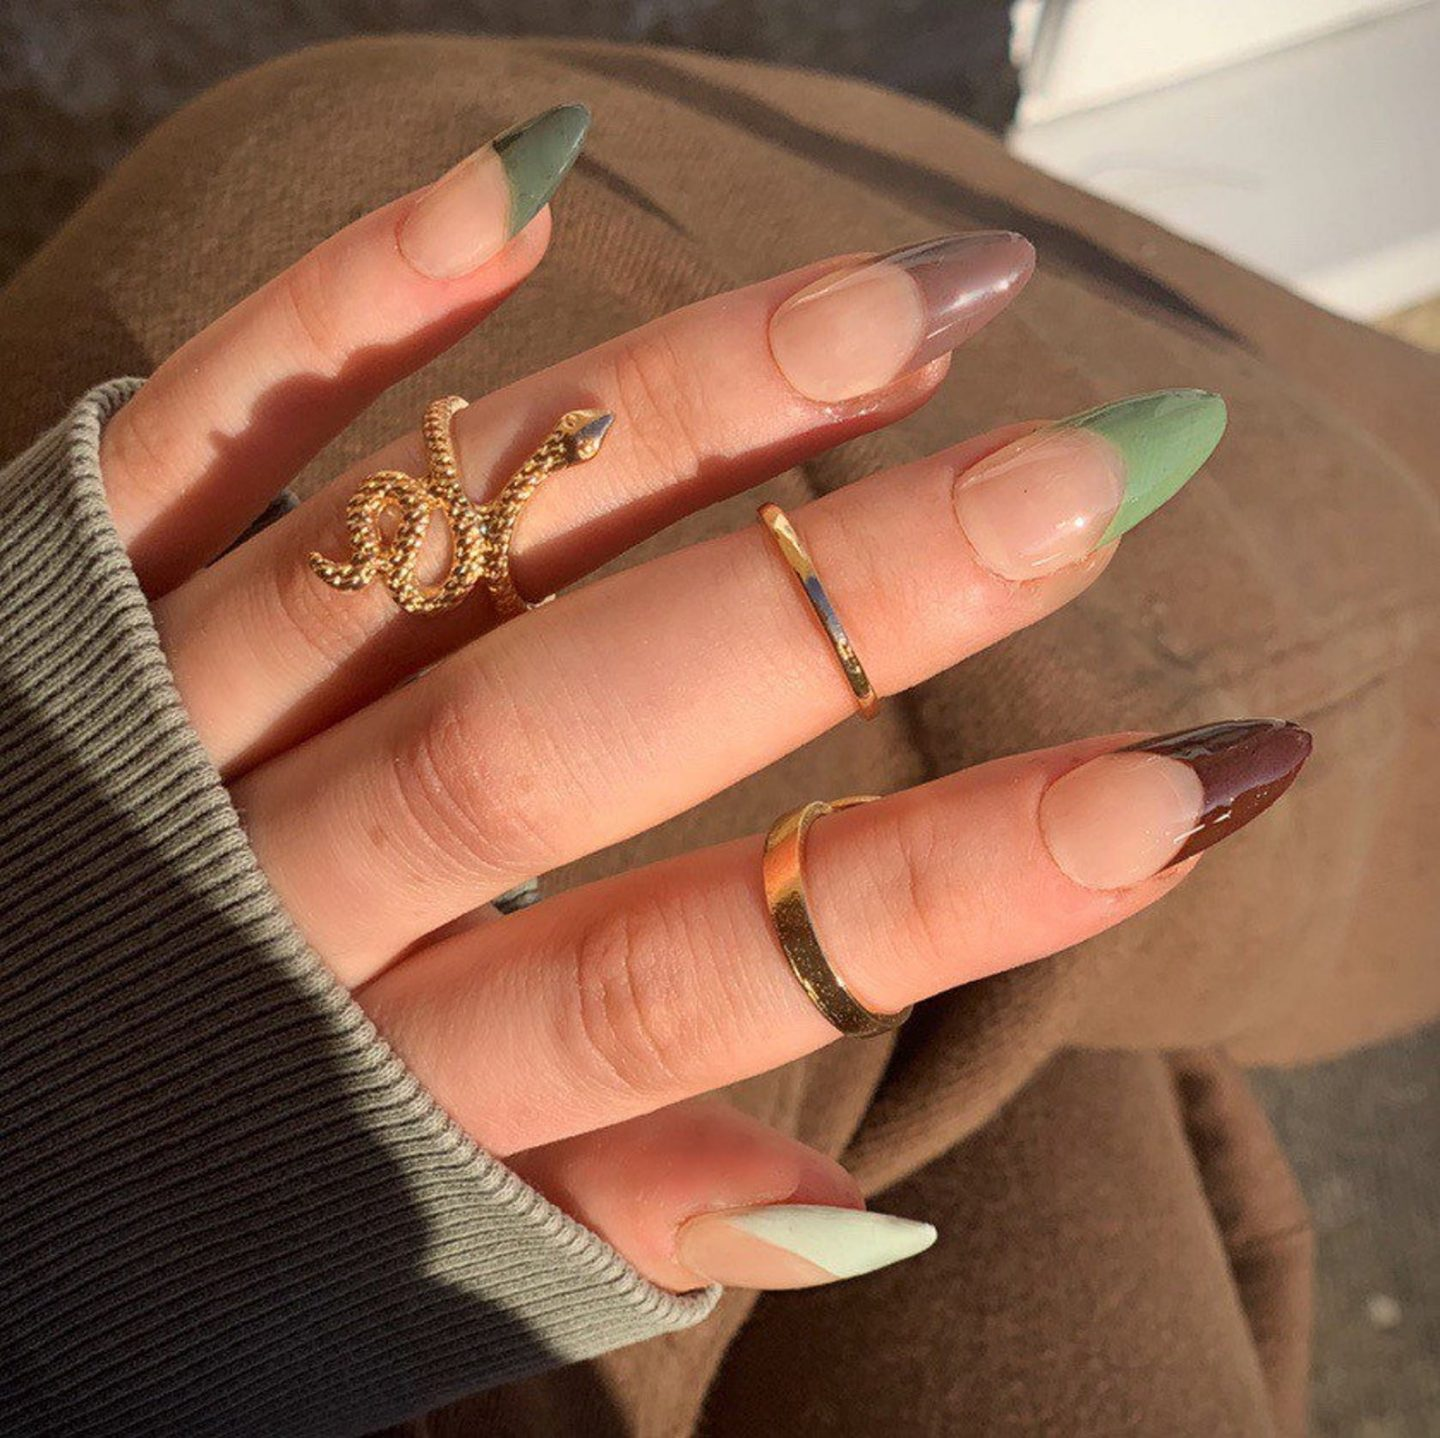 Brown and green French tip nails